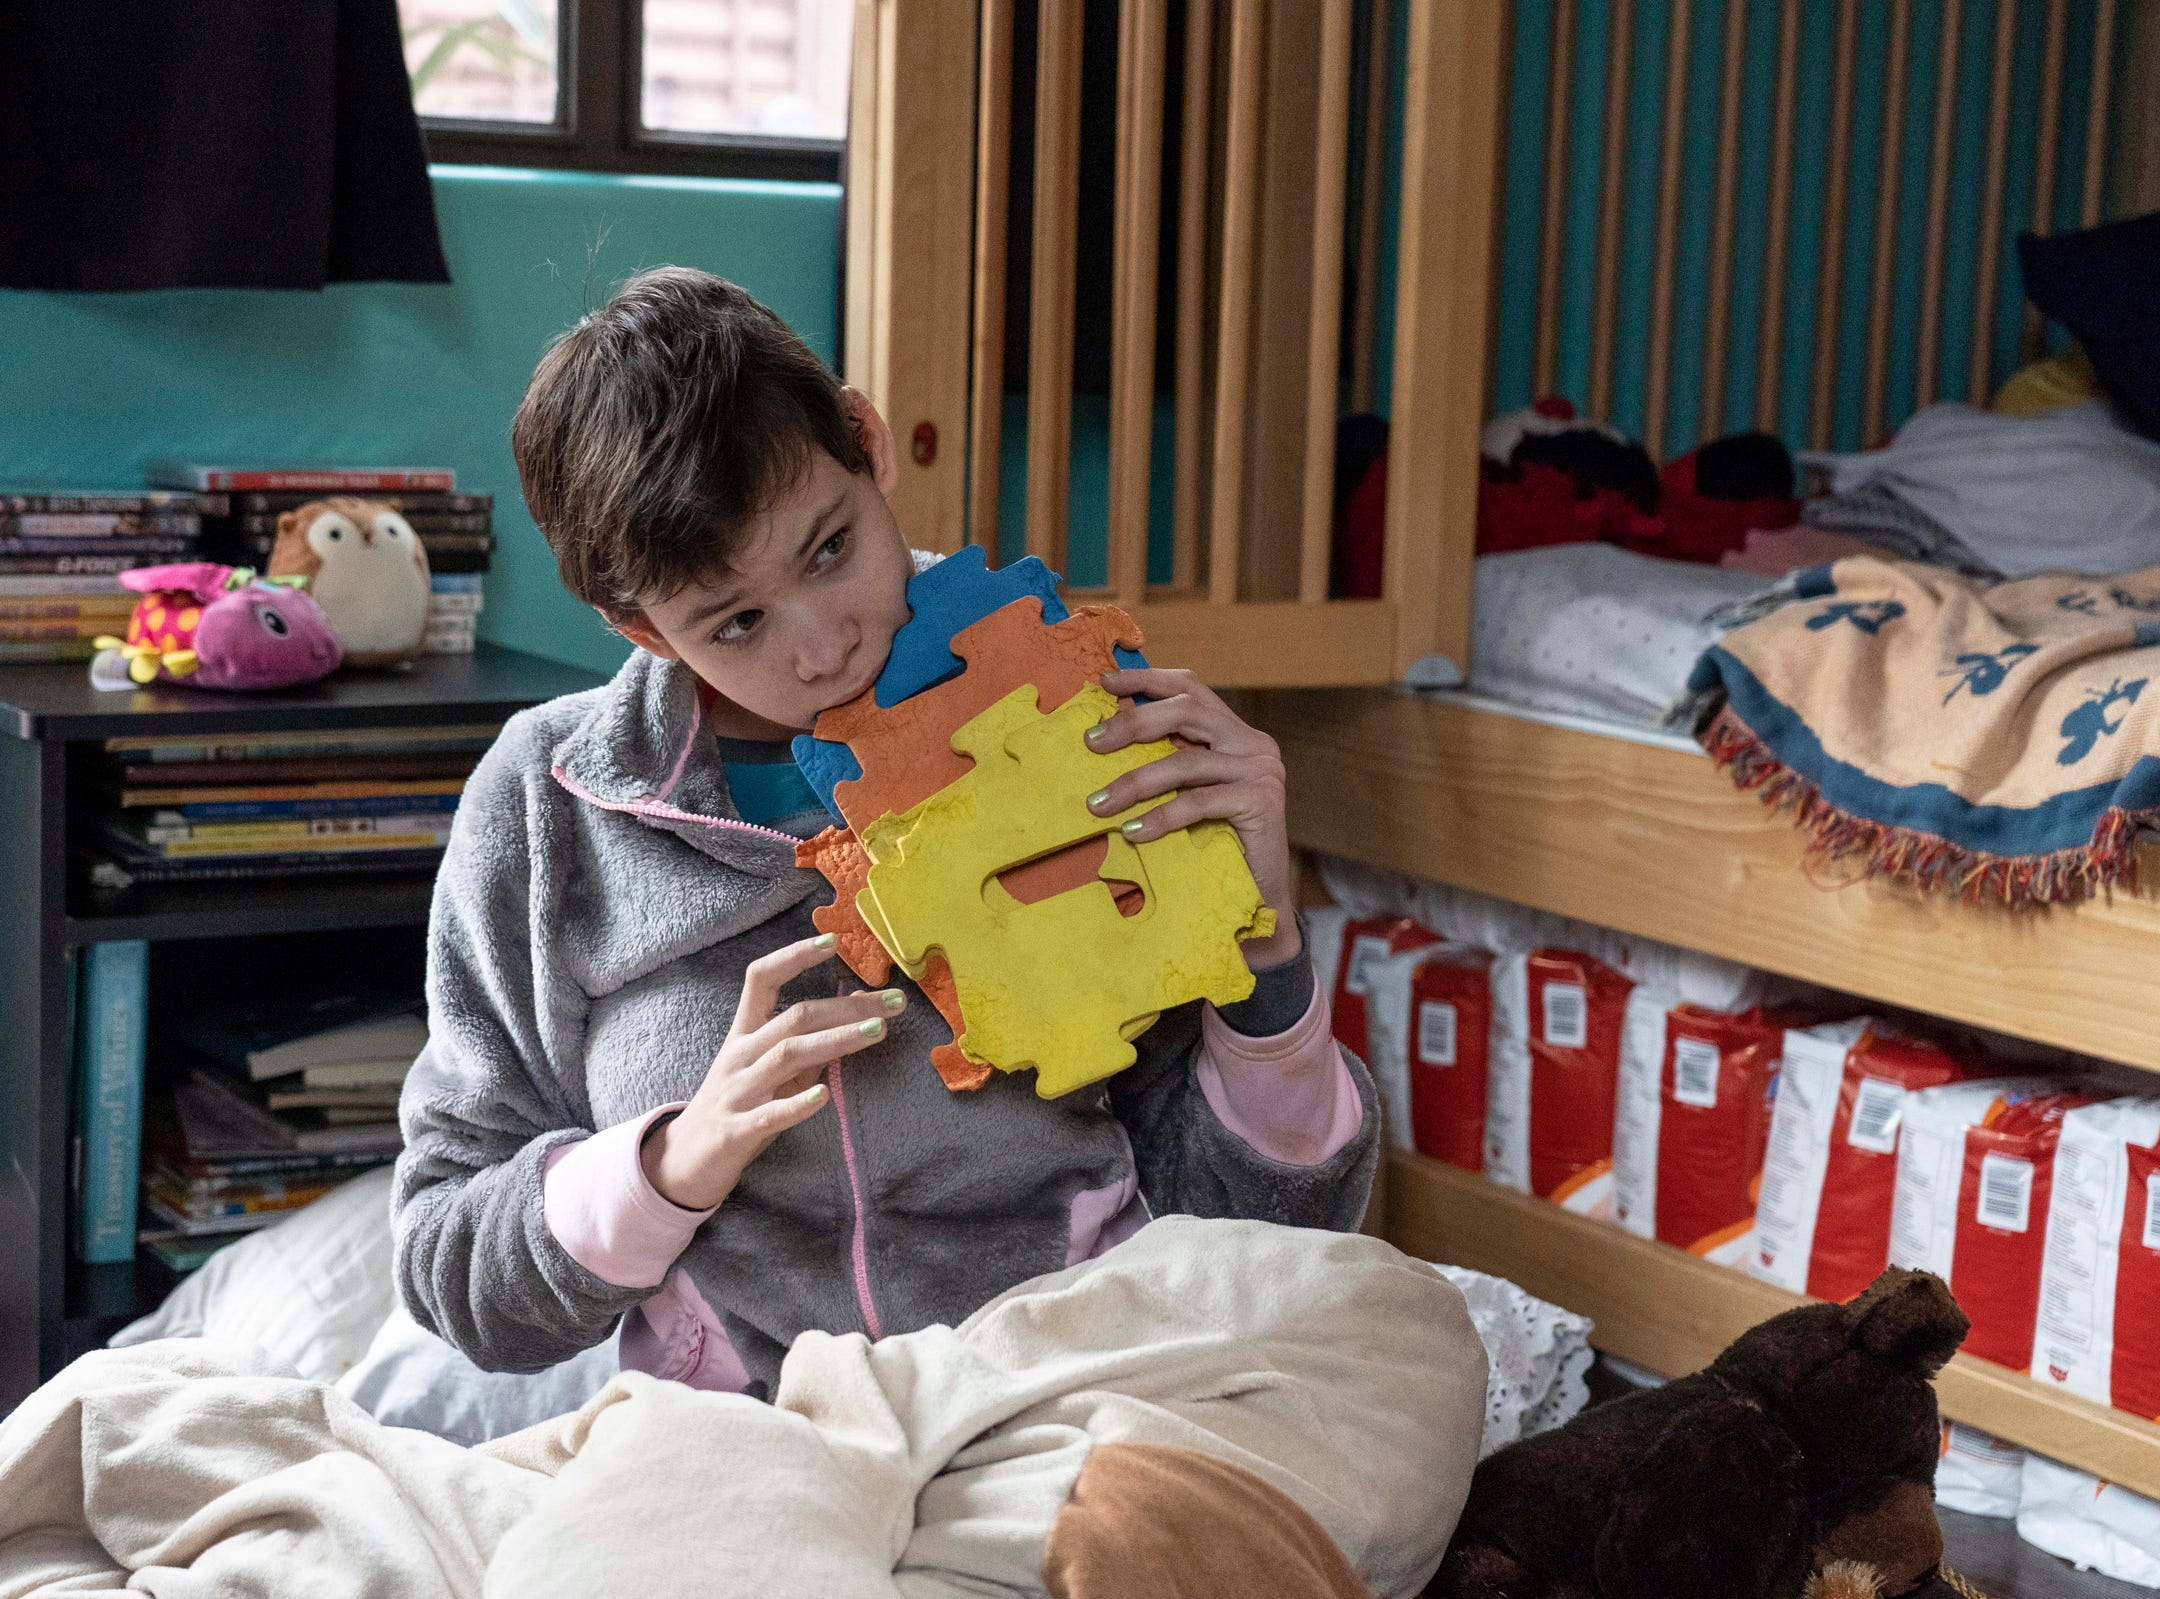 Julianna Wadsack has cerebral palsy, intractable epilepsy syndrome, autism and severe mental retardation. She also has various physical disabiities, including scoliosis, blindness in one eye and limited vision in the other.